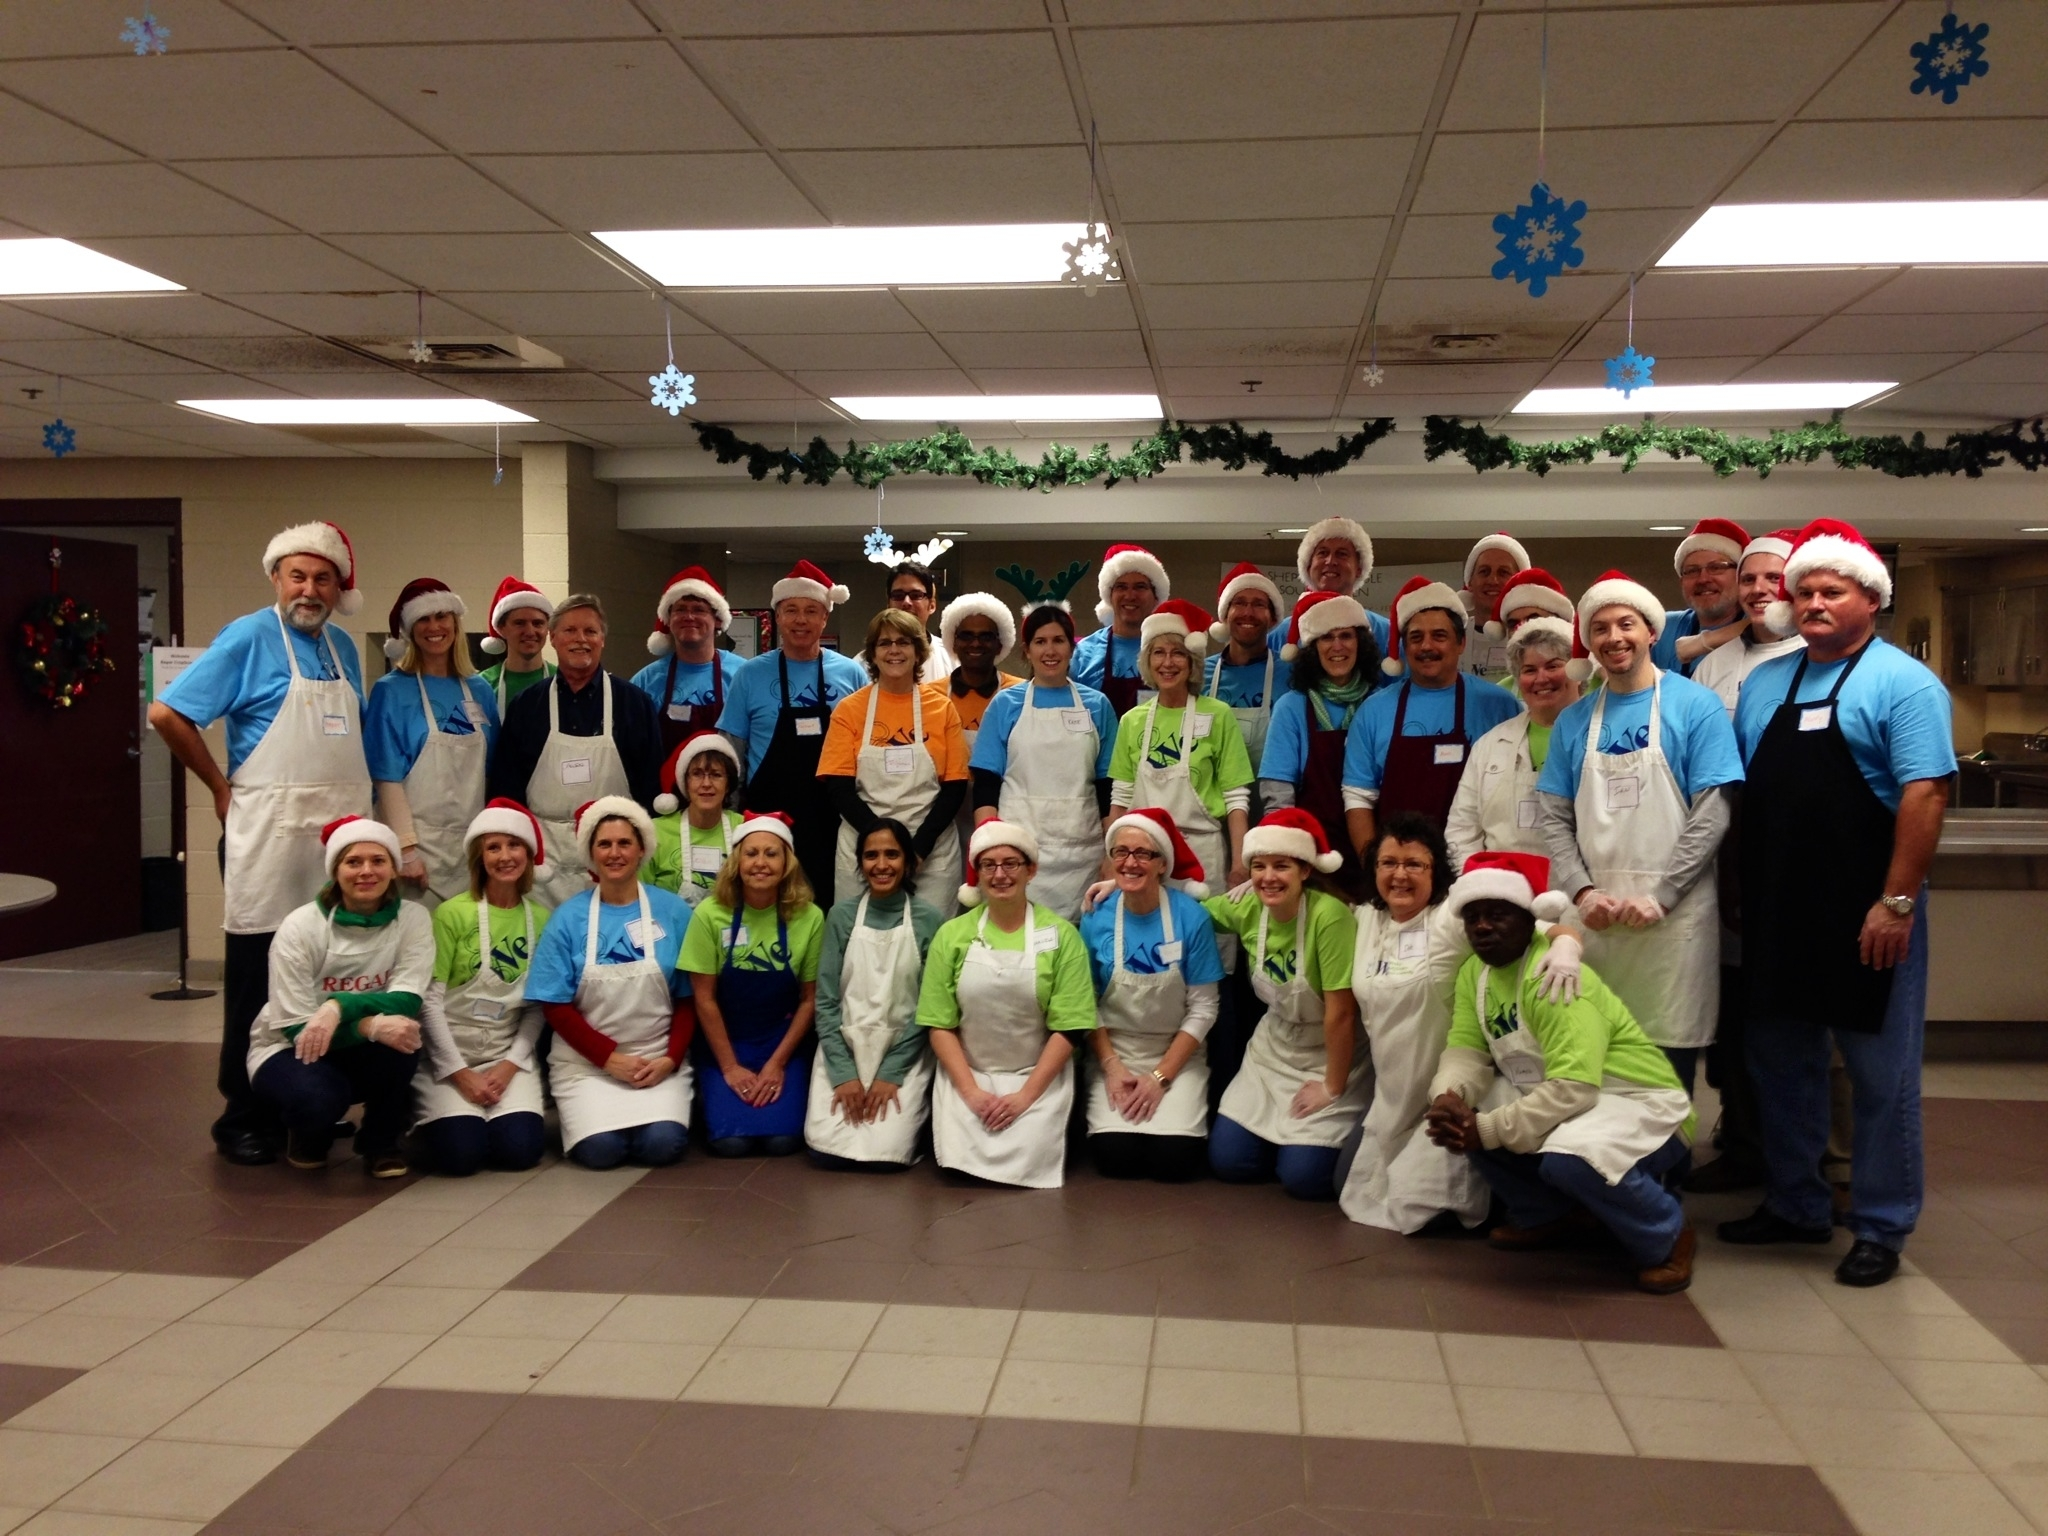 bayer cropscience celebrates the holidays with a day of service at